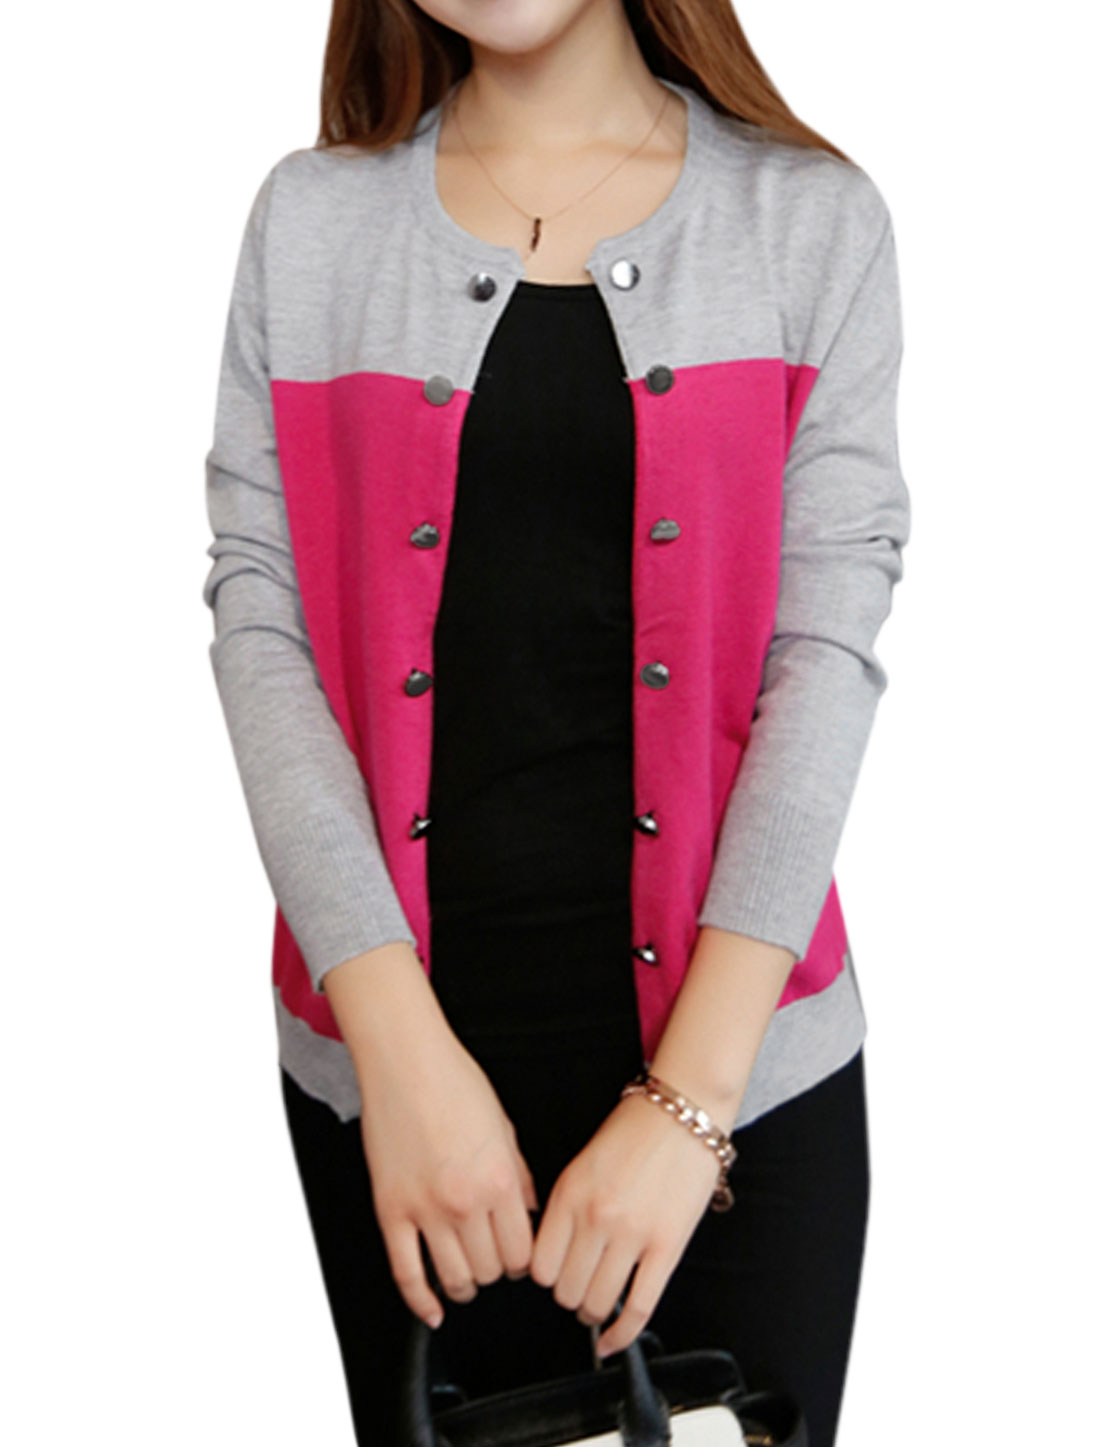 Women Long Sleeves Front Opening Color Block Knit Cardigan Fuchsia Light Gray XS